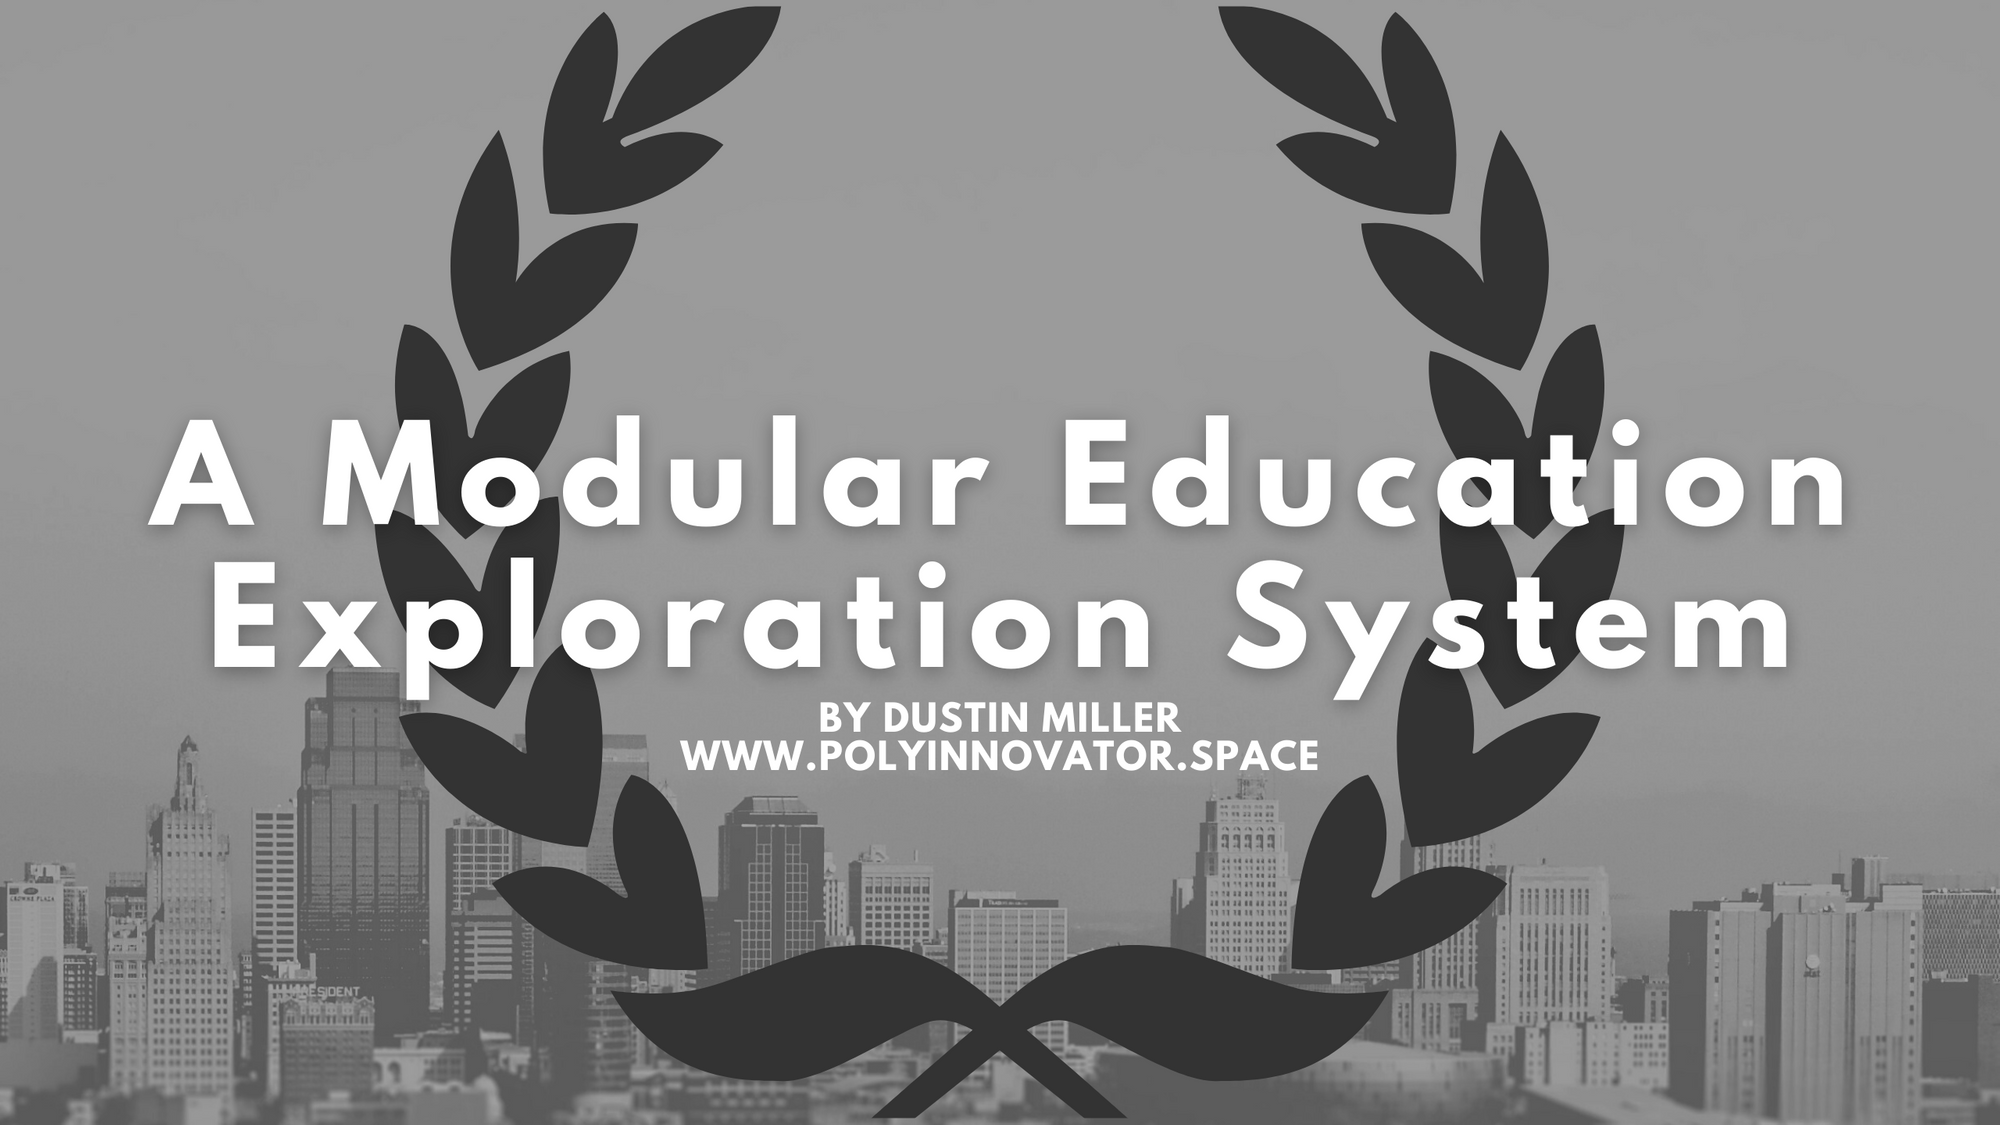 A Modular Education Exploration System